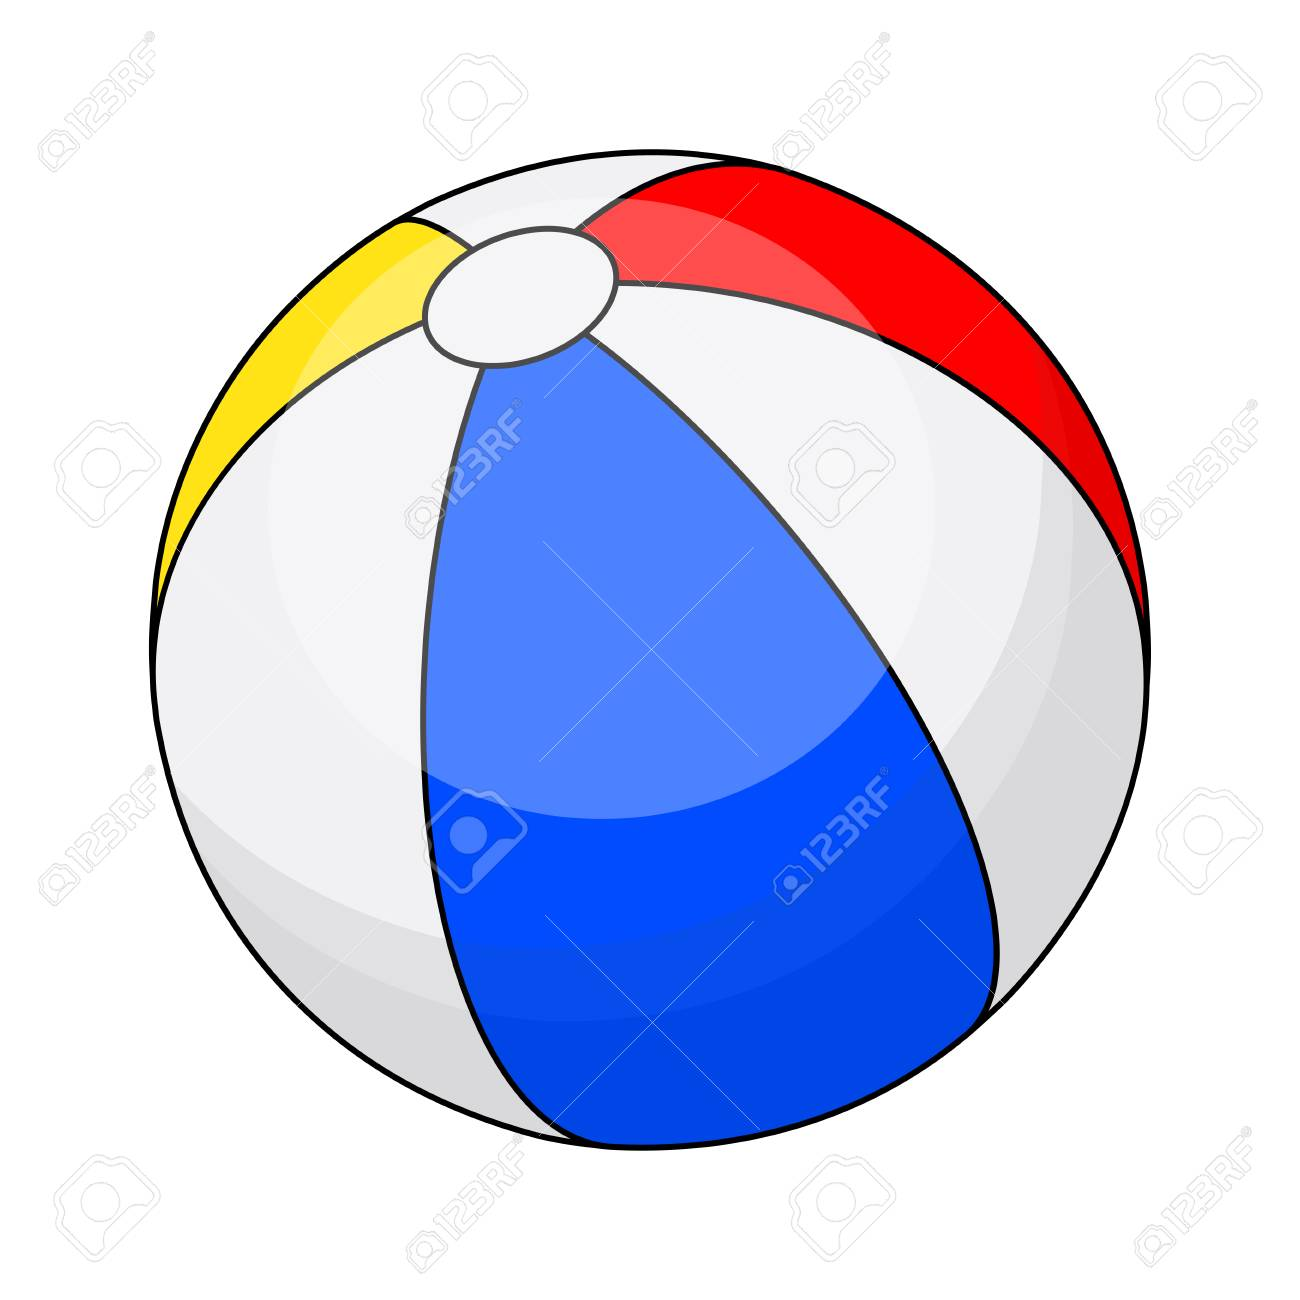 beach ball vector symbol icon design beautiful illustration rh 123rf com mac beach ball vector beach ball vector png